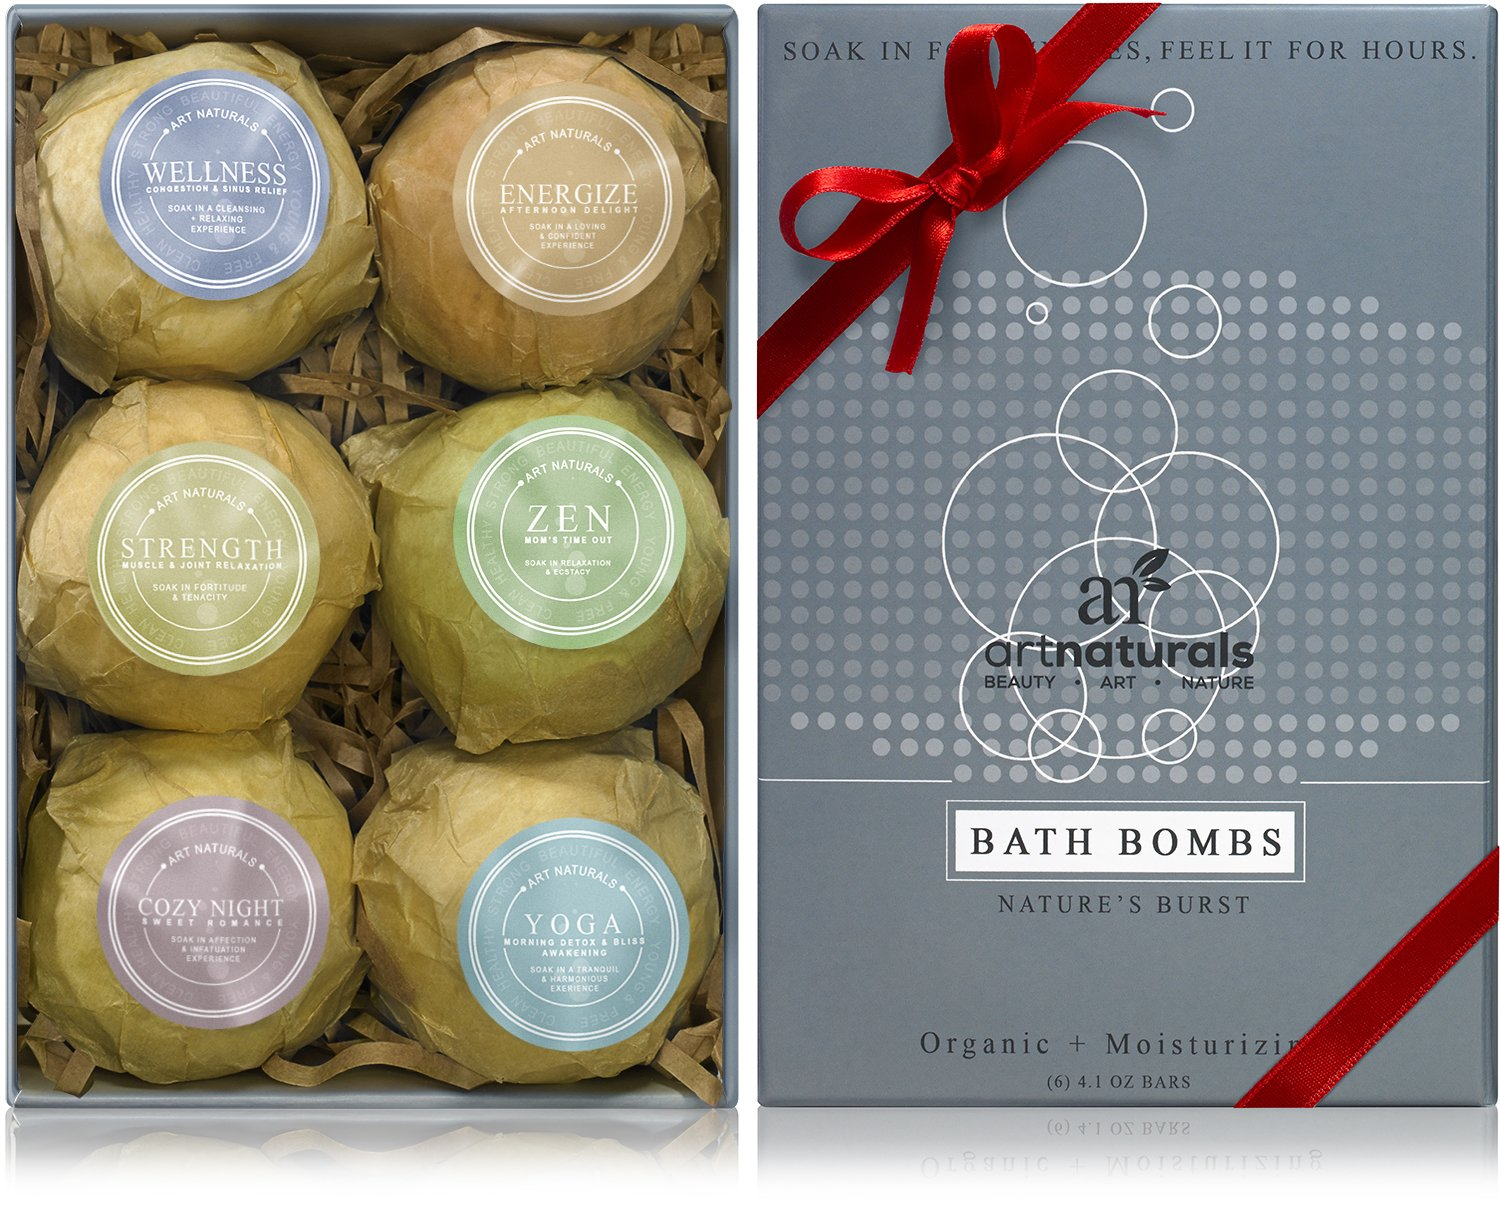 Art Naturals Bath Bombs Mothers Day Gift Set - 6 Ultra Lush Essential Oil Handmade Spa Bomb Fizzies - Organic & Natural Ingredients & Shea Butter for Moisturizing Dry Skin - Relaxation In a Box